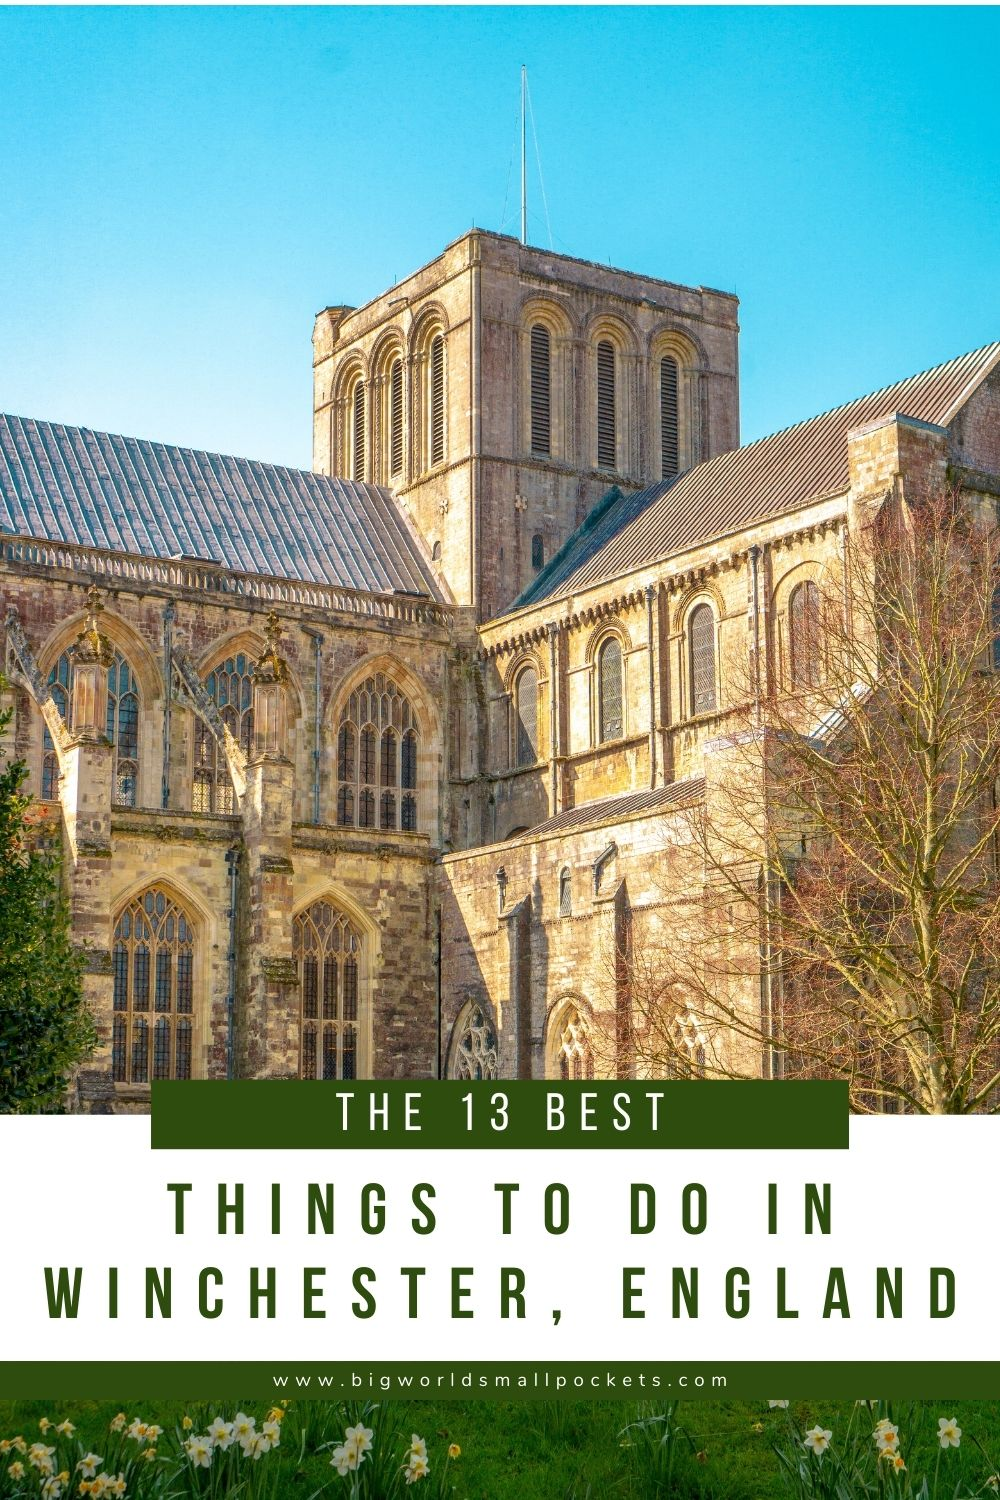 13 Best Things to Do in Winchester, England